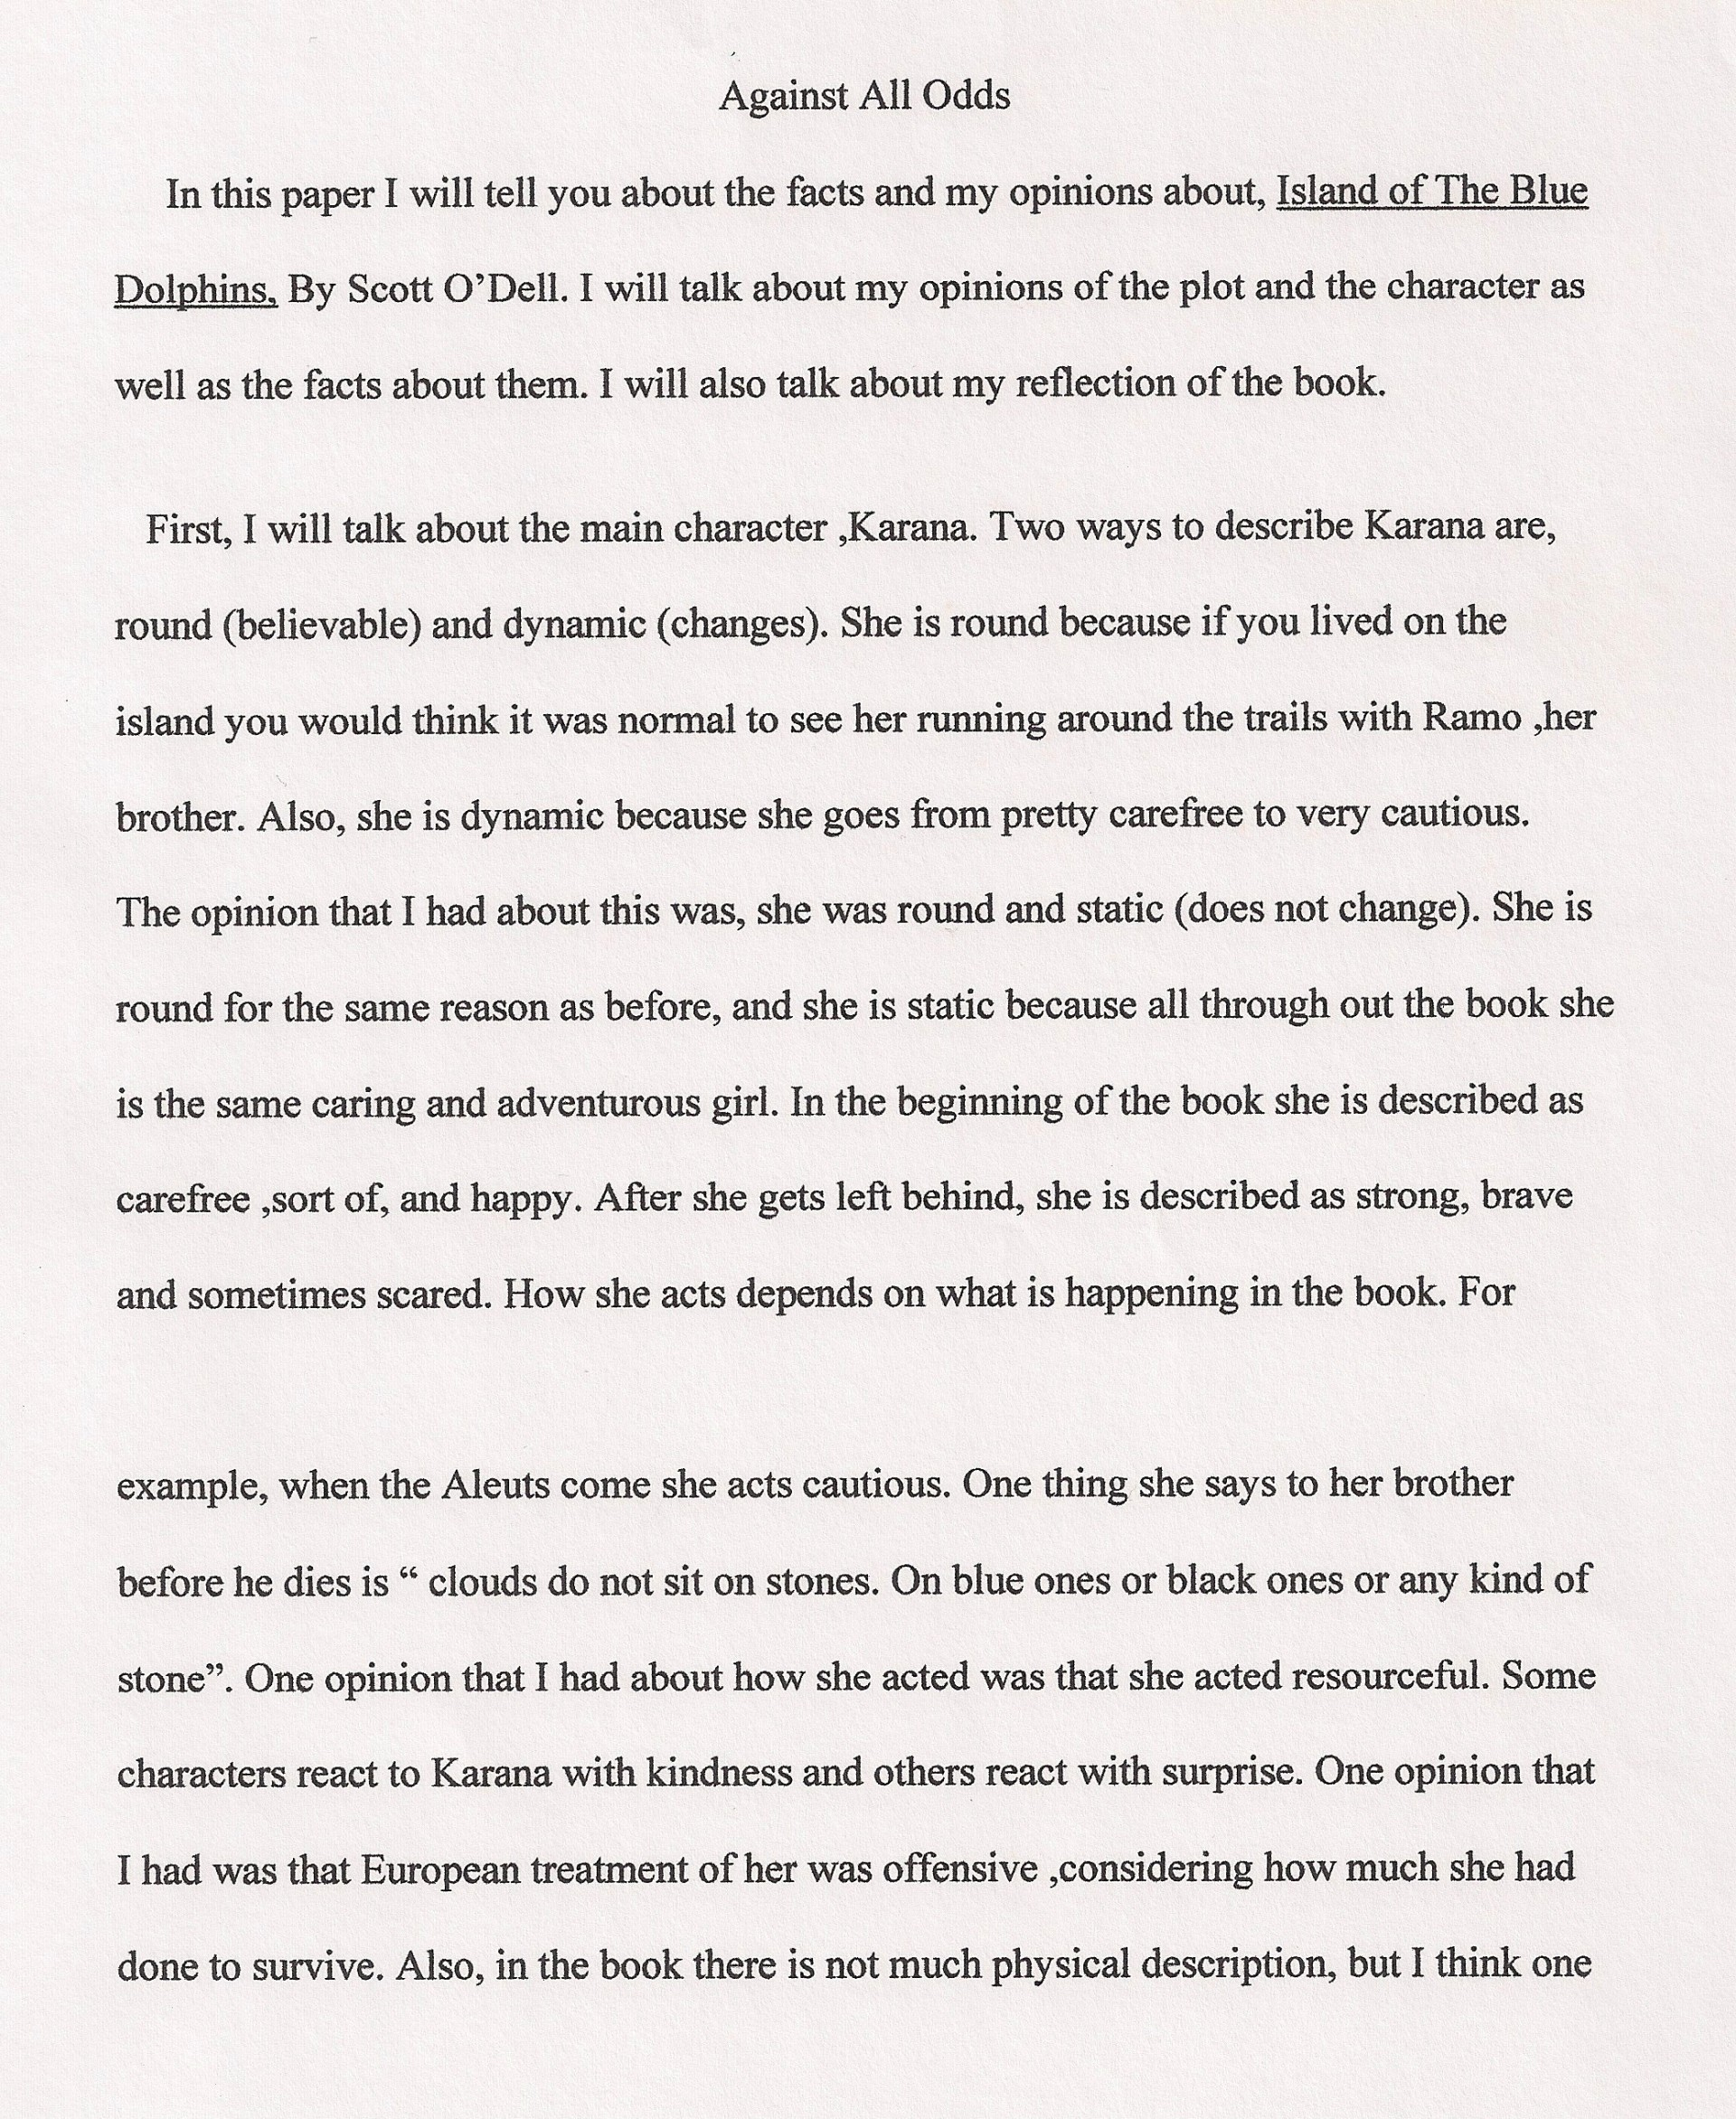 011 Persuasive Essay Writing For 5th Grade Example Week Against All Odds Merifully Samples L Impressive Essays Written By Fifth Graders Sample A 1920